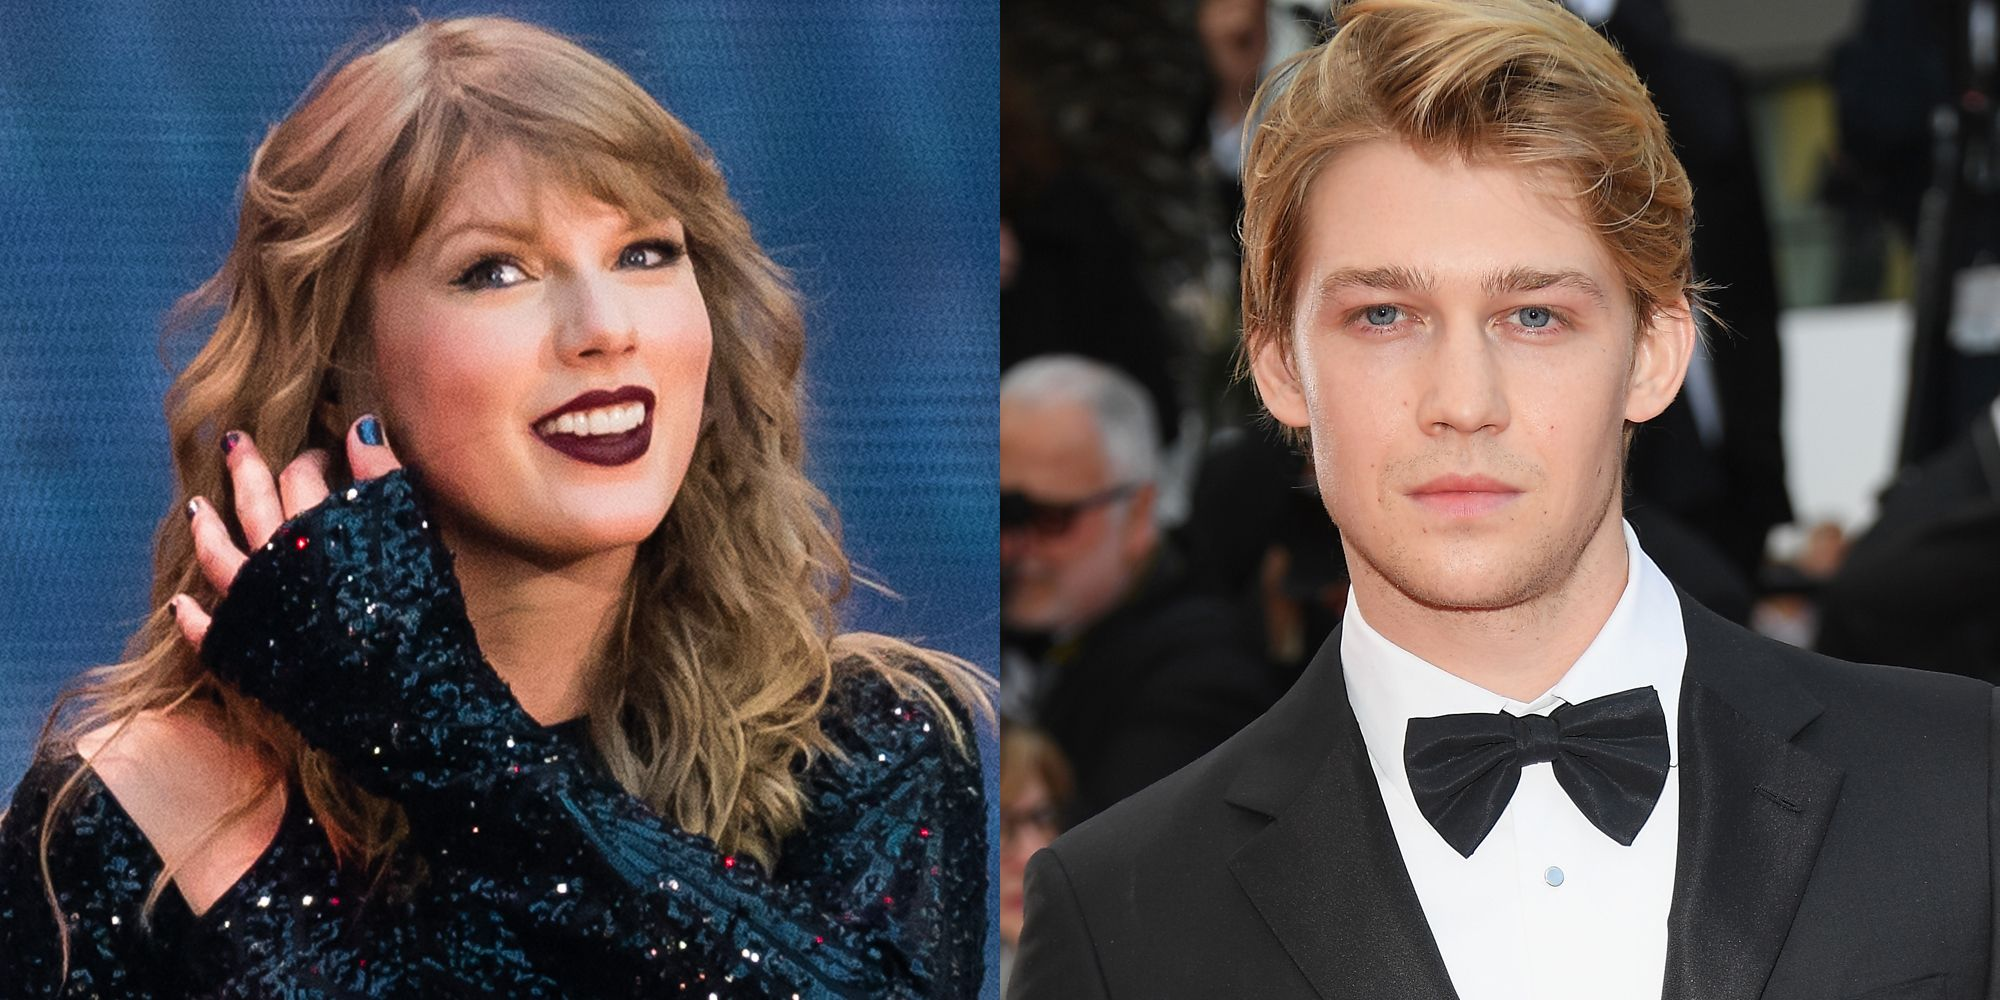 Taylor Swift S Boyfriend Joe Alwyn Speaks About Her In Interview Joe On Dating Taylor